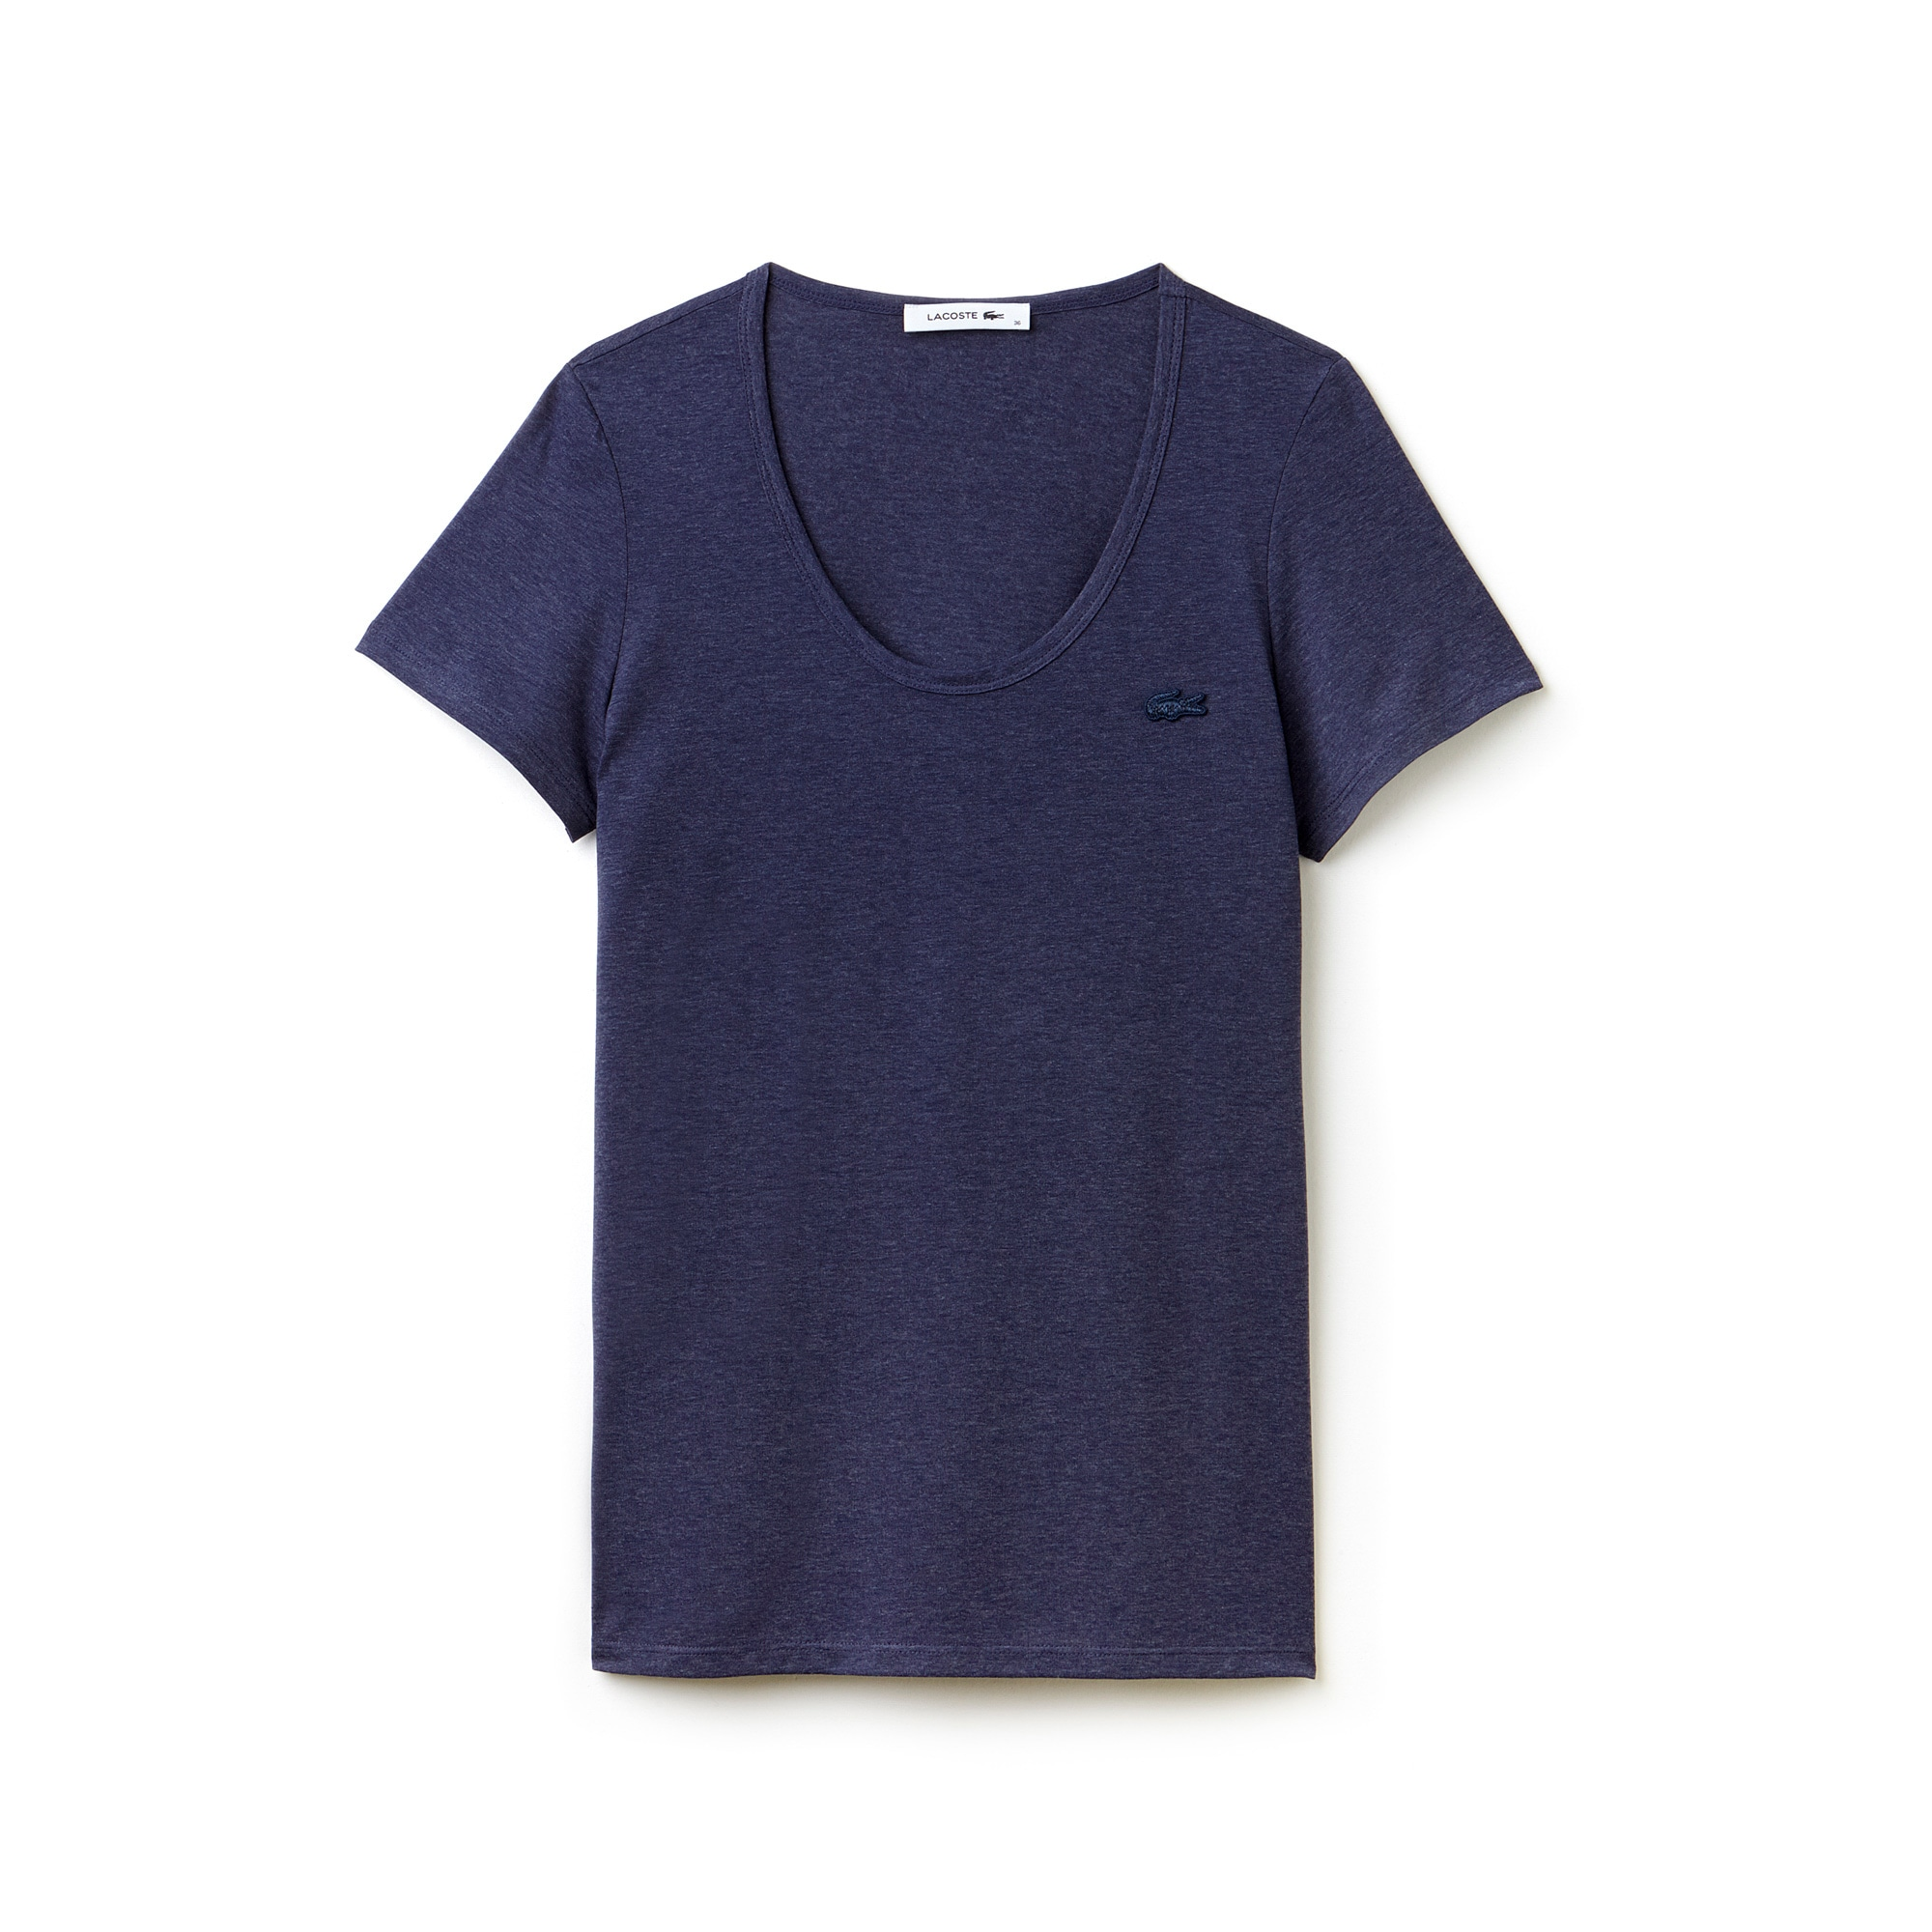 Women's Wide Neck Flowing Jersey Blend T-shirt